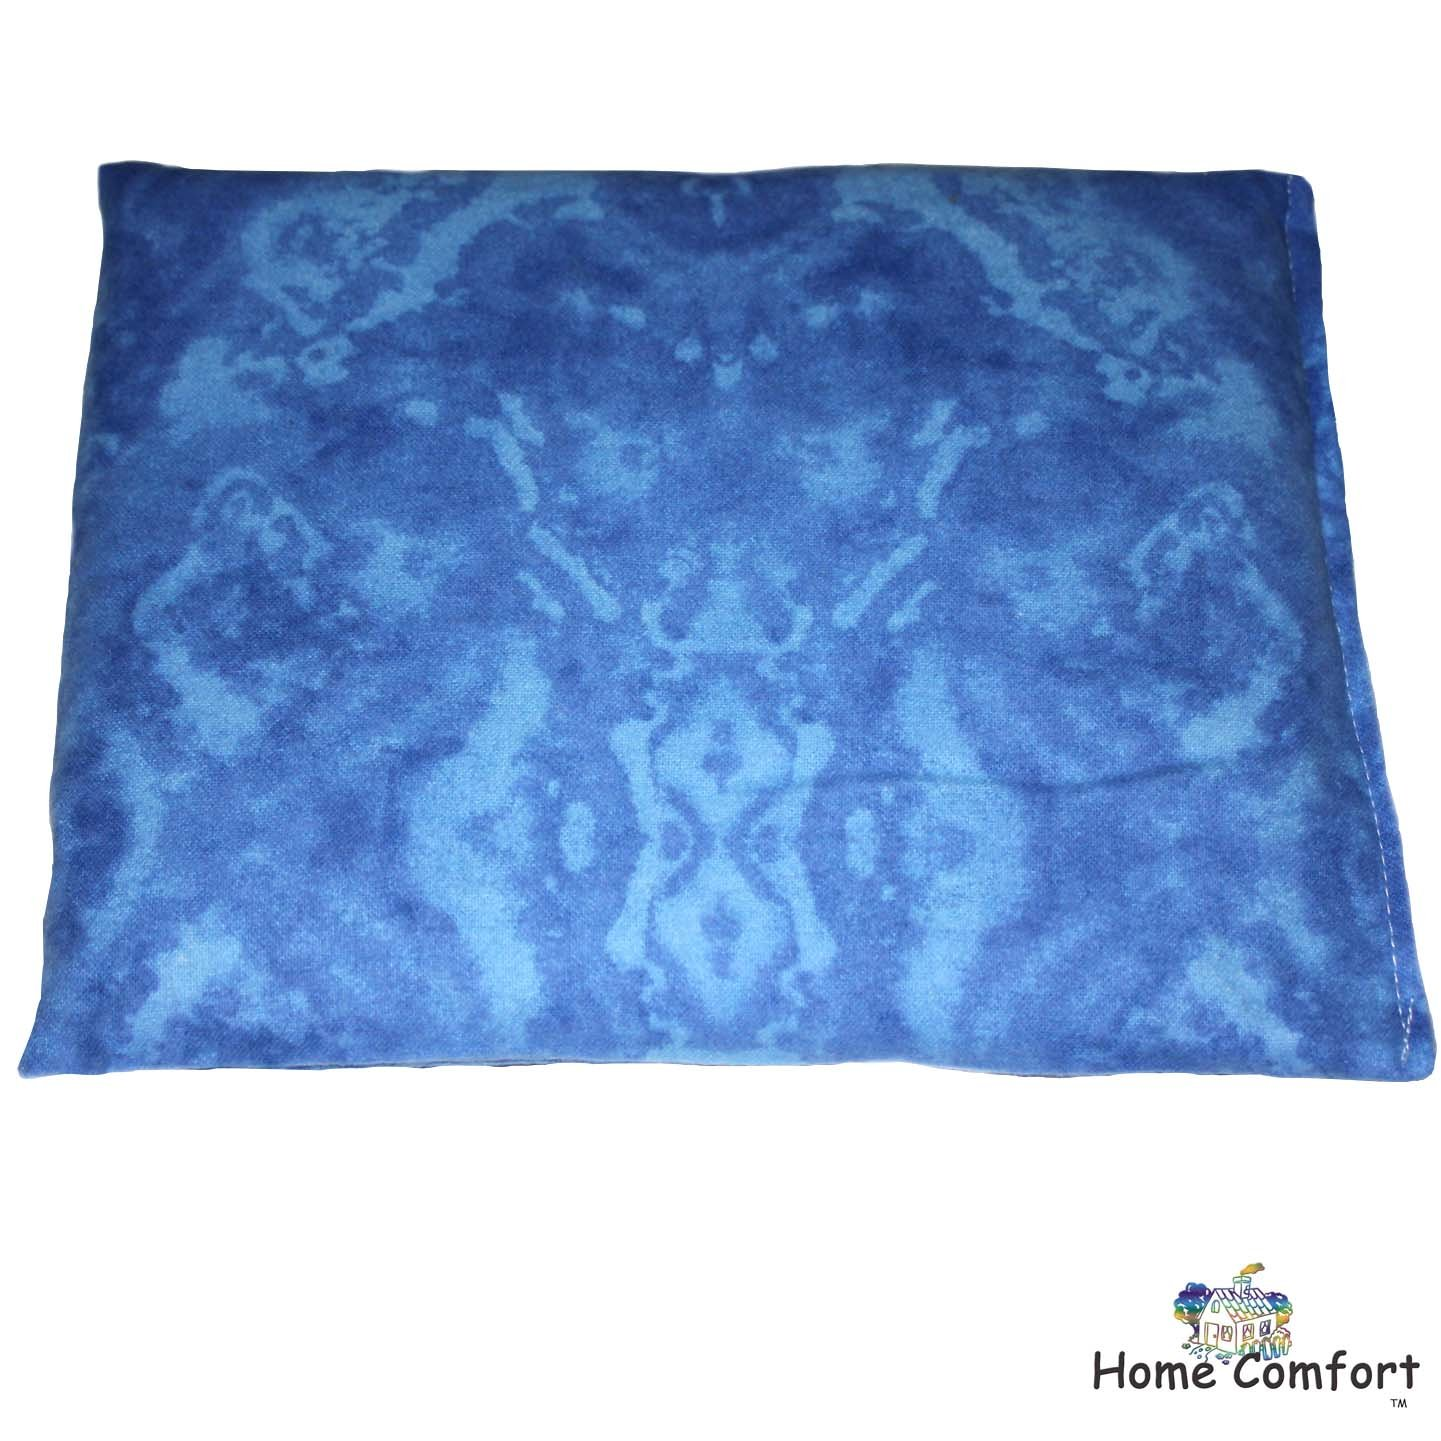 Microwaveable Heating Pad (Blue)